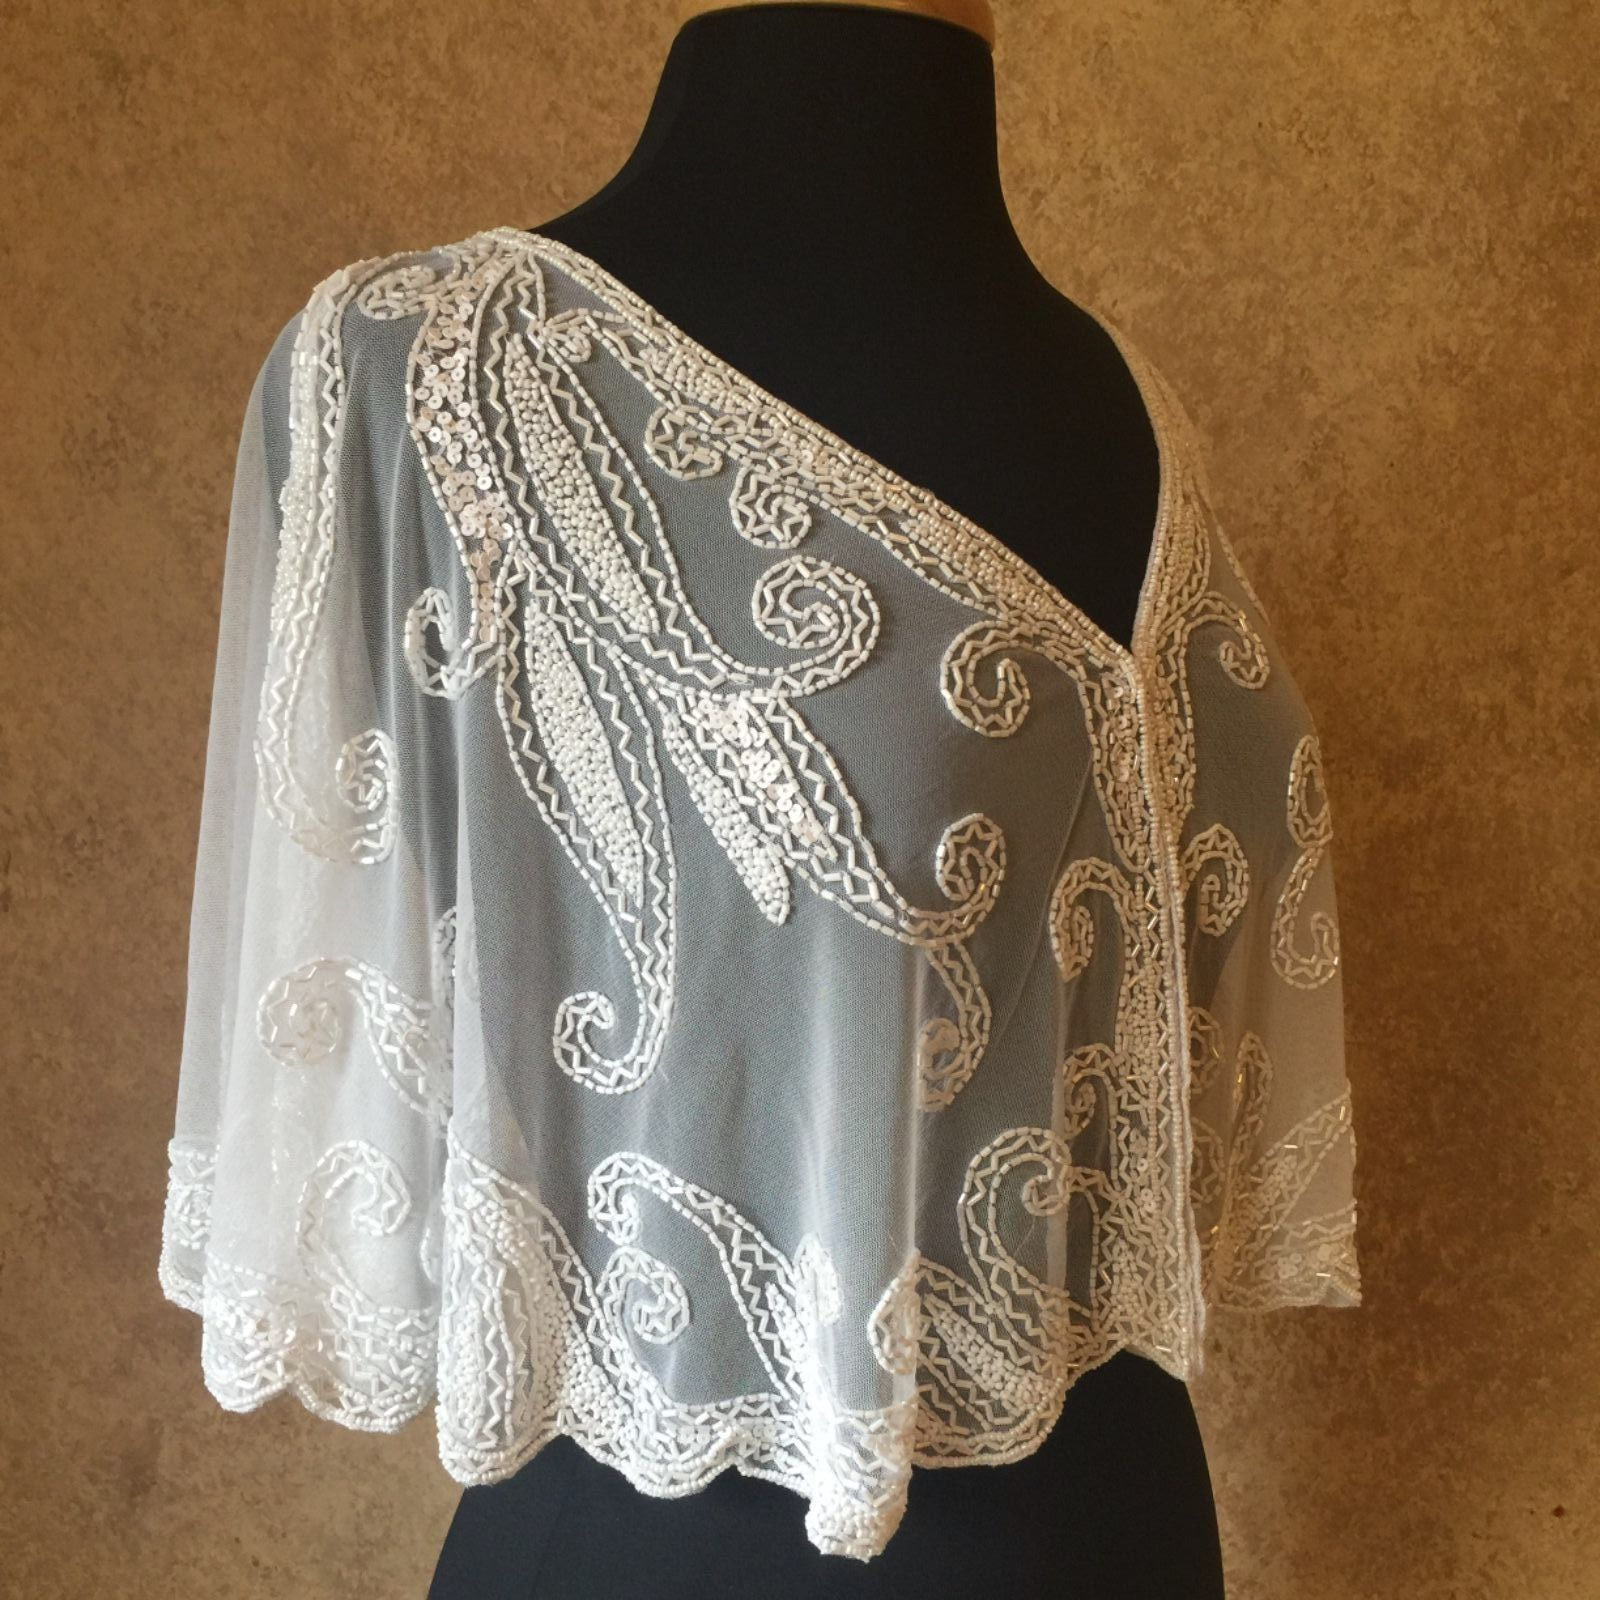 Primary image for Sequin Beaded Bridal Cape Collar Shoulder Shrug Shawl Applique White Chiffon